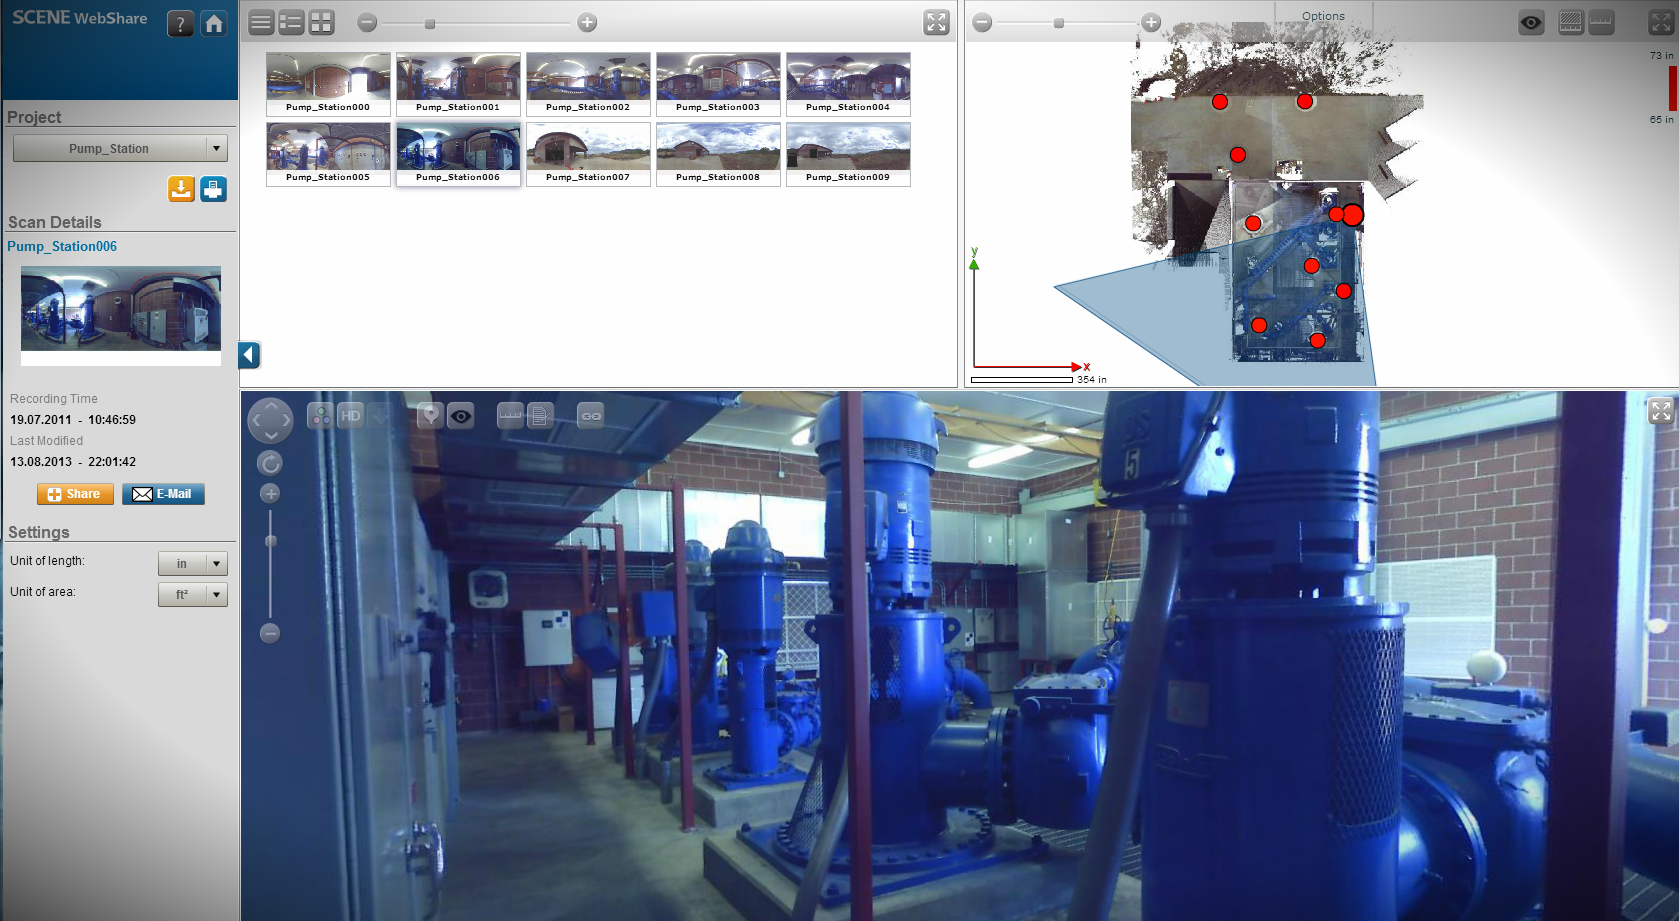 SCENE WebShare screen capture of piping facility, pump house